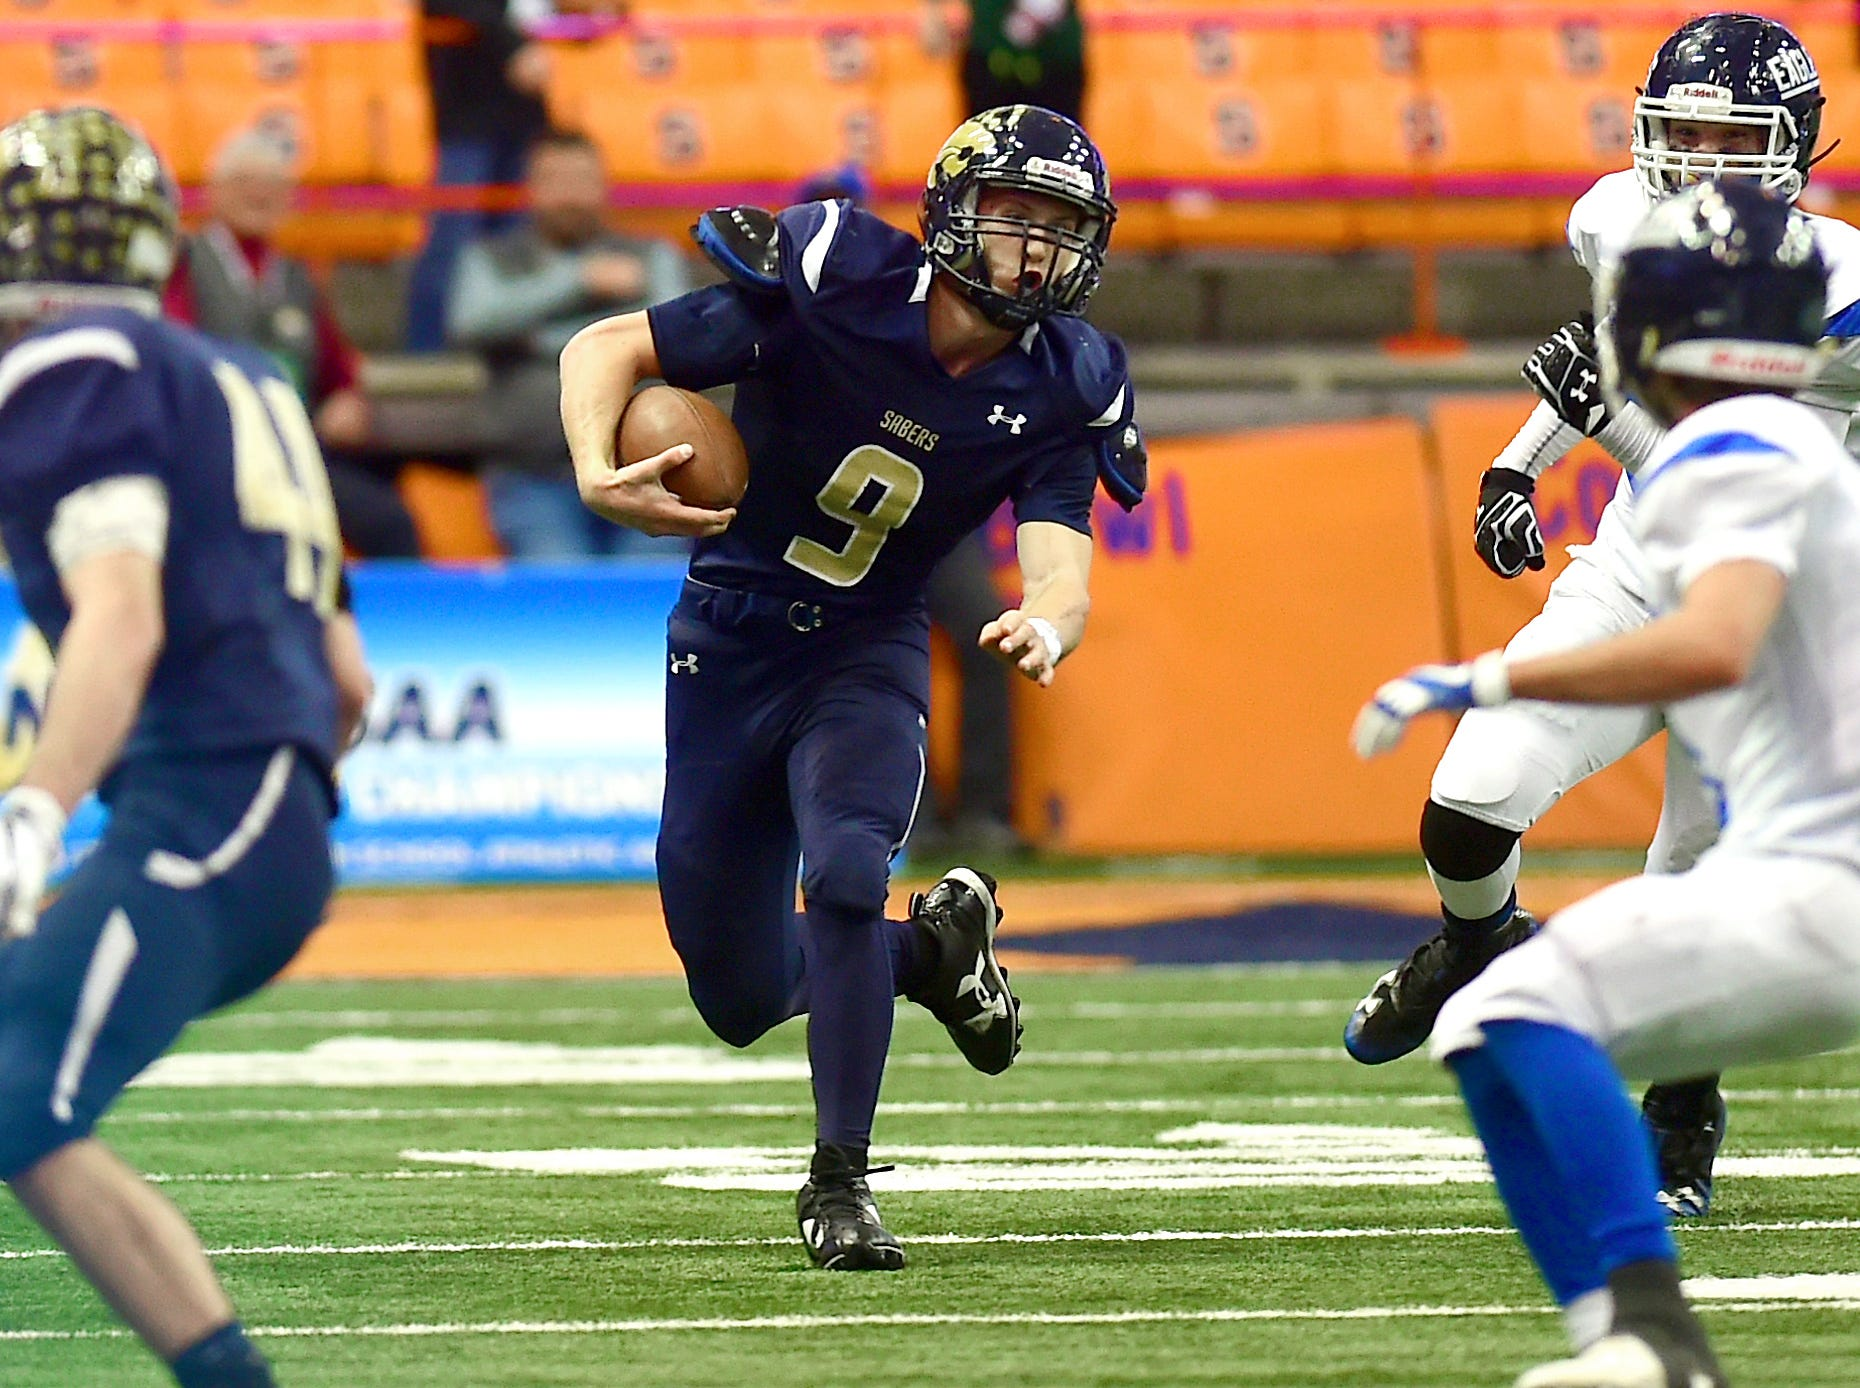 Jarred Freije (9) of Susquehanna Valley during first half of Susquehanna Valley vs. Dobbs Ferry, Class C NYSPHSAA state football final, Carrier Dome, Syracuse. Friday, November 23, 2018.